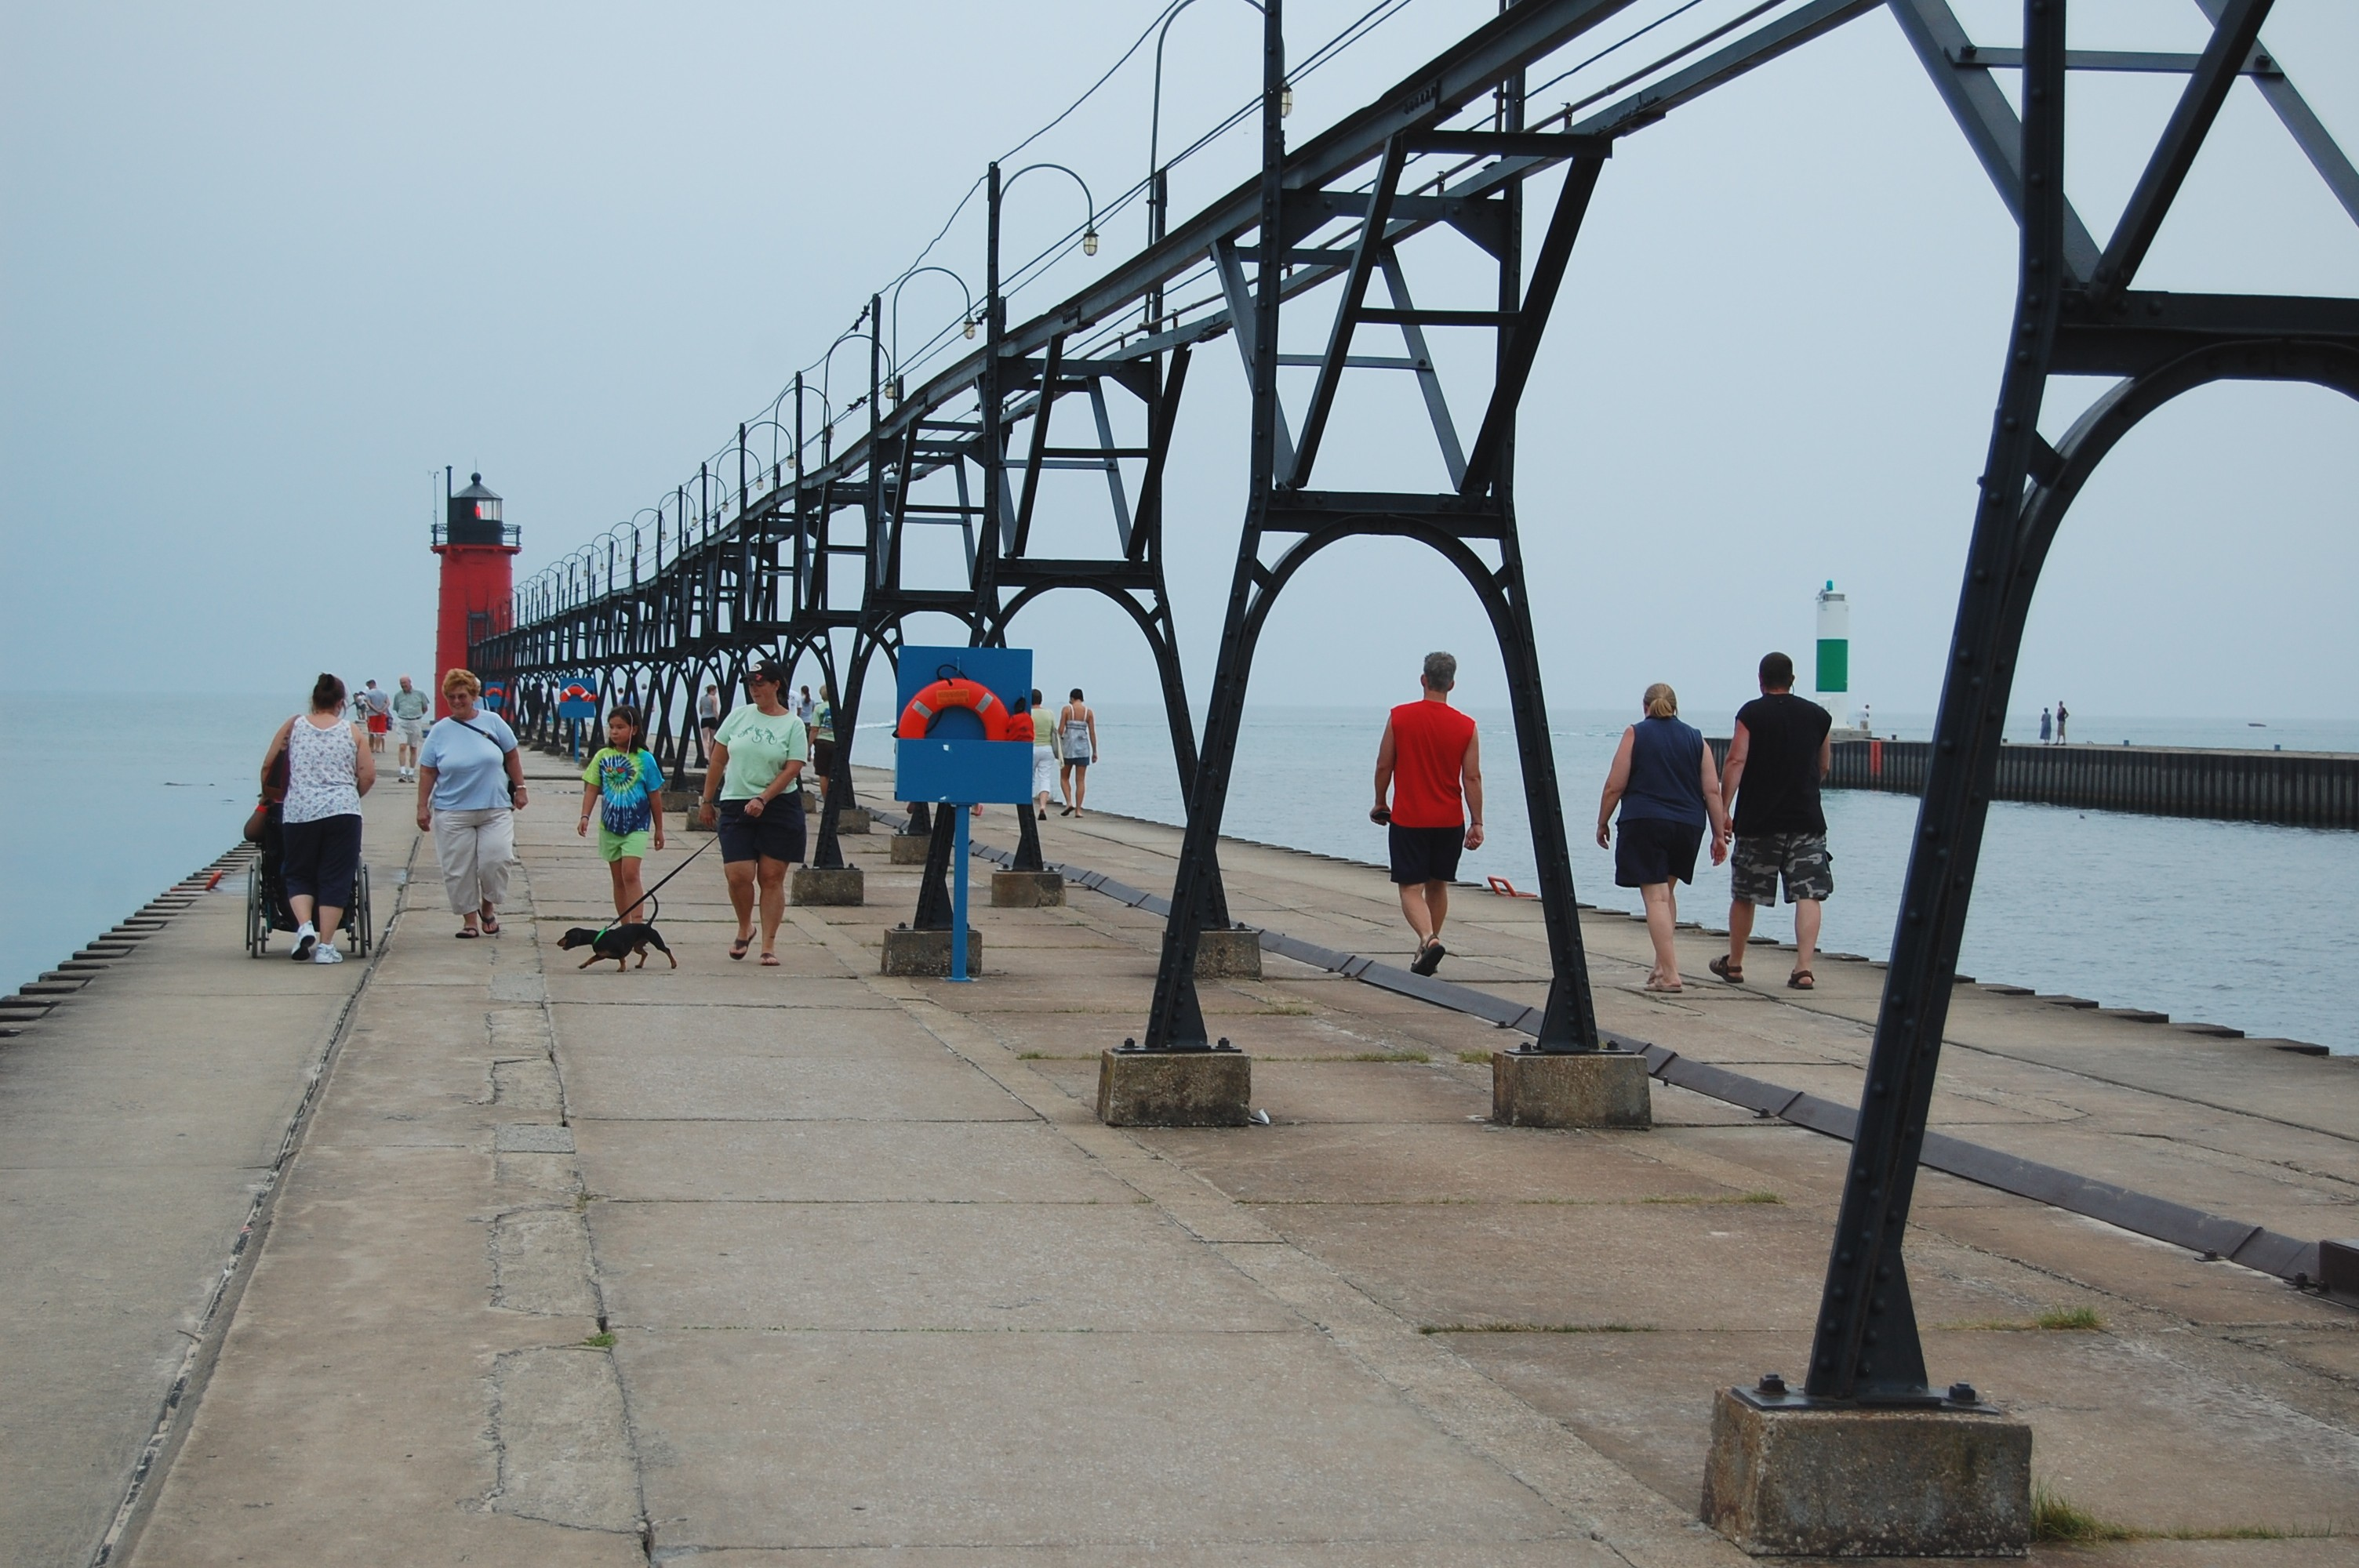 A day at the beach: Yo goes to South Haven